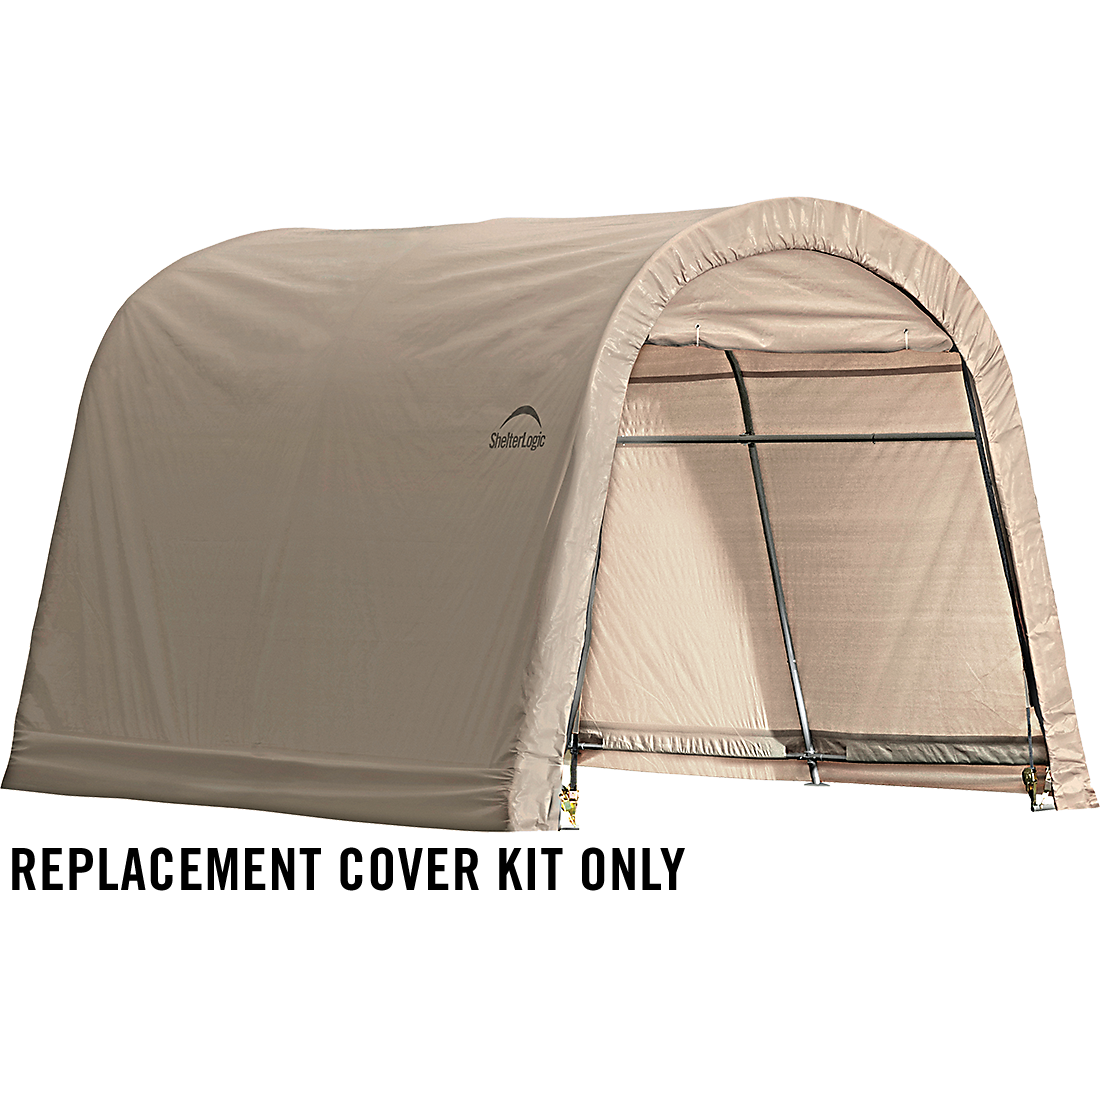 Shelterlogic Replacement Cover Kit : Replacement cover kit for the shed in a box roundtop